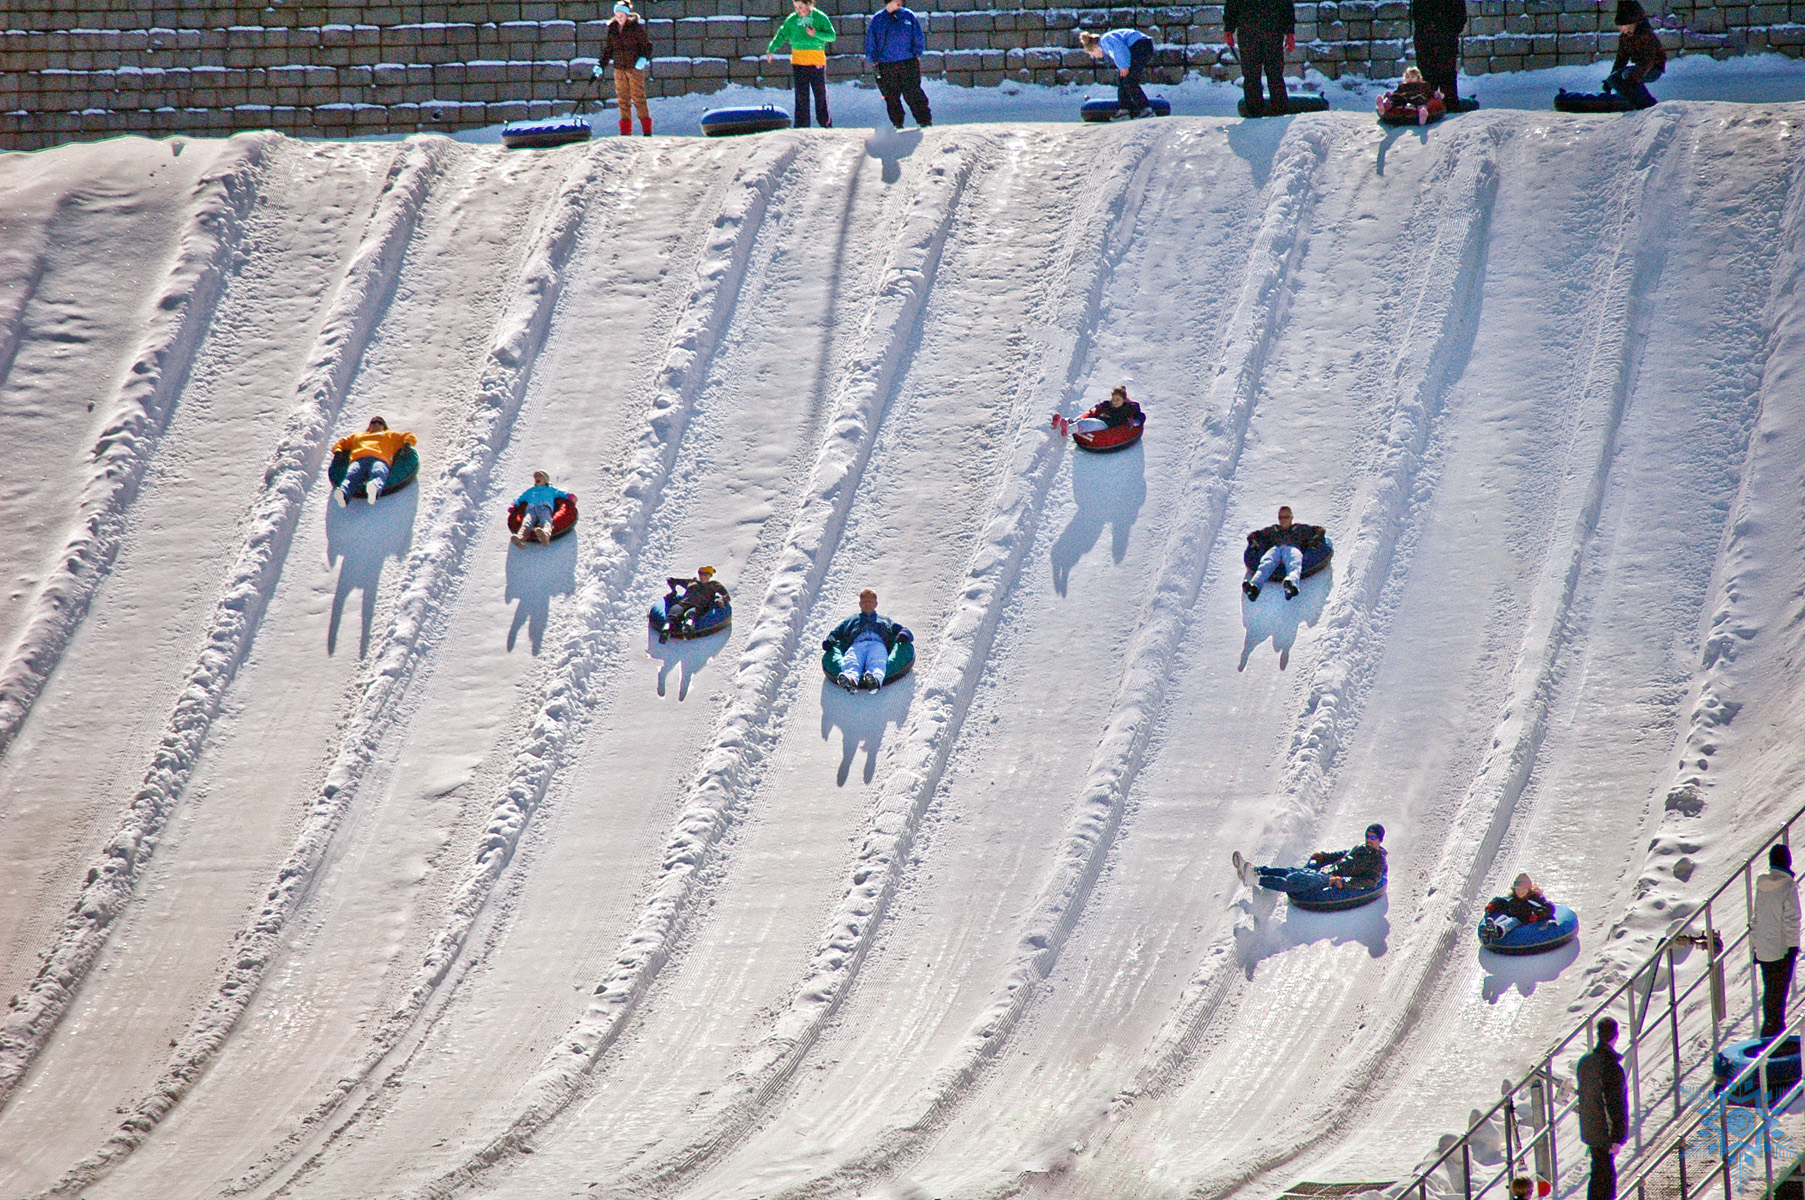 Snow tubing at Ober Gatlinburg, Gatlinburg, Tennessee